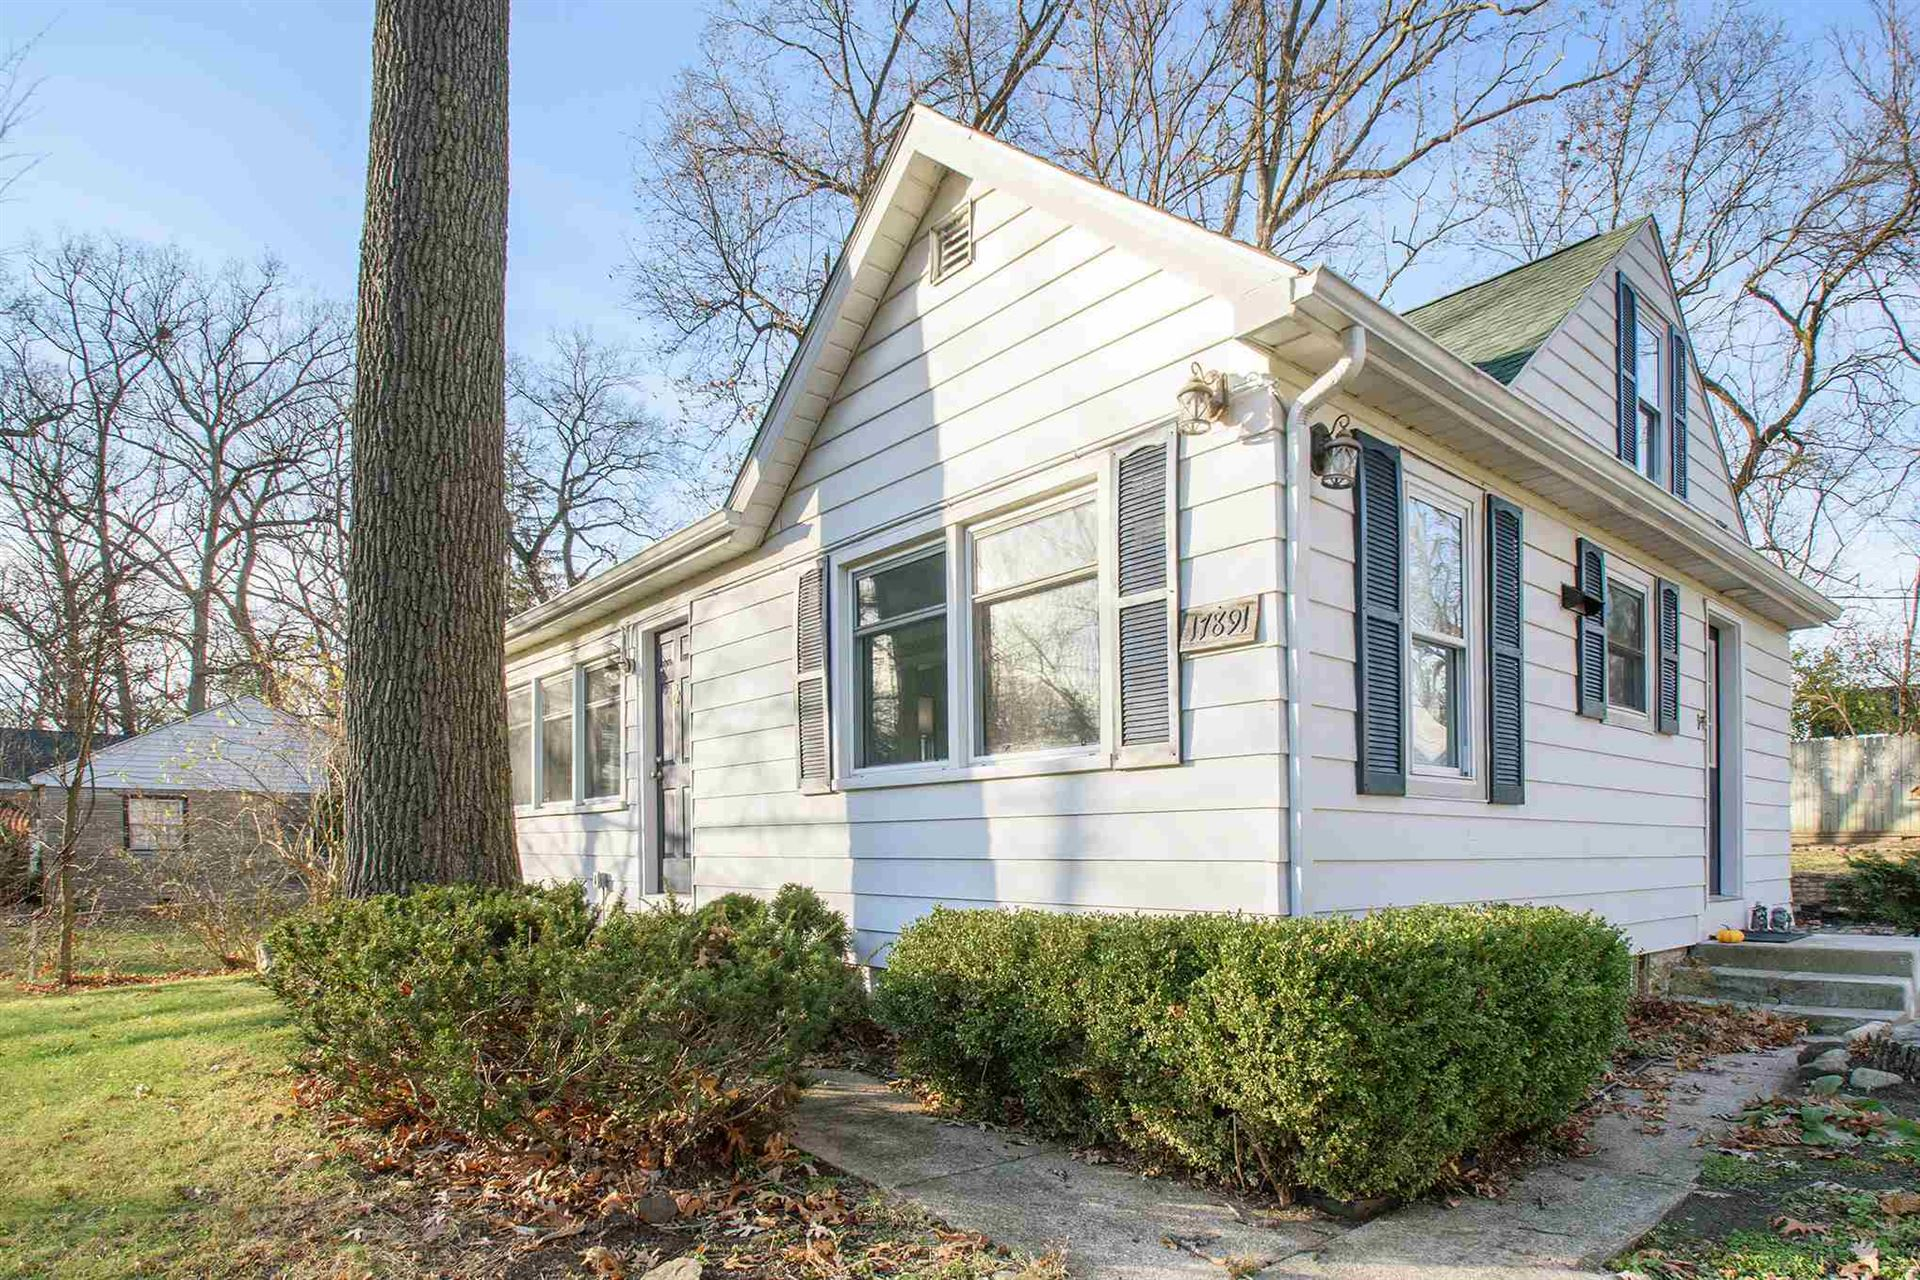 17891 Ponader Drive, South Bend, IN 46635 - #: 202046416